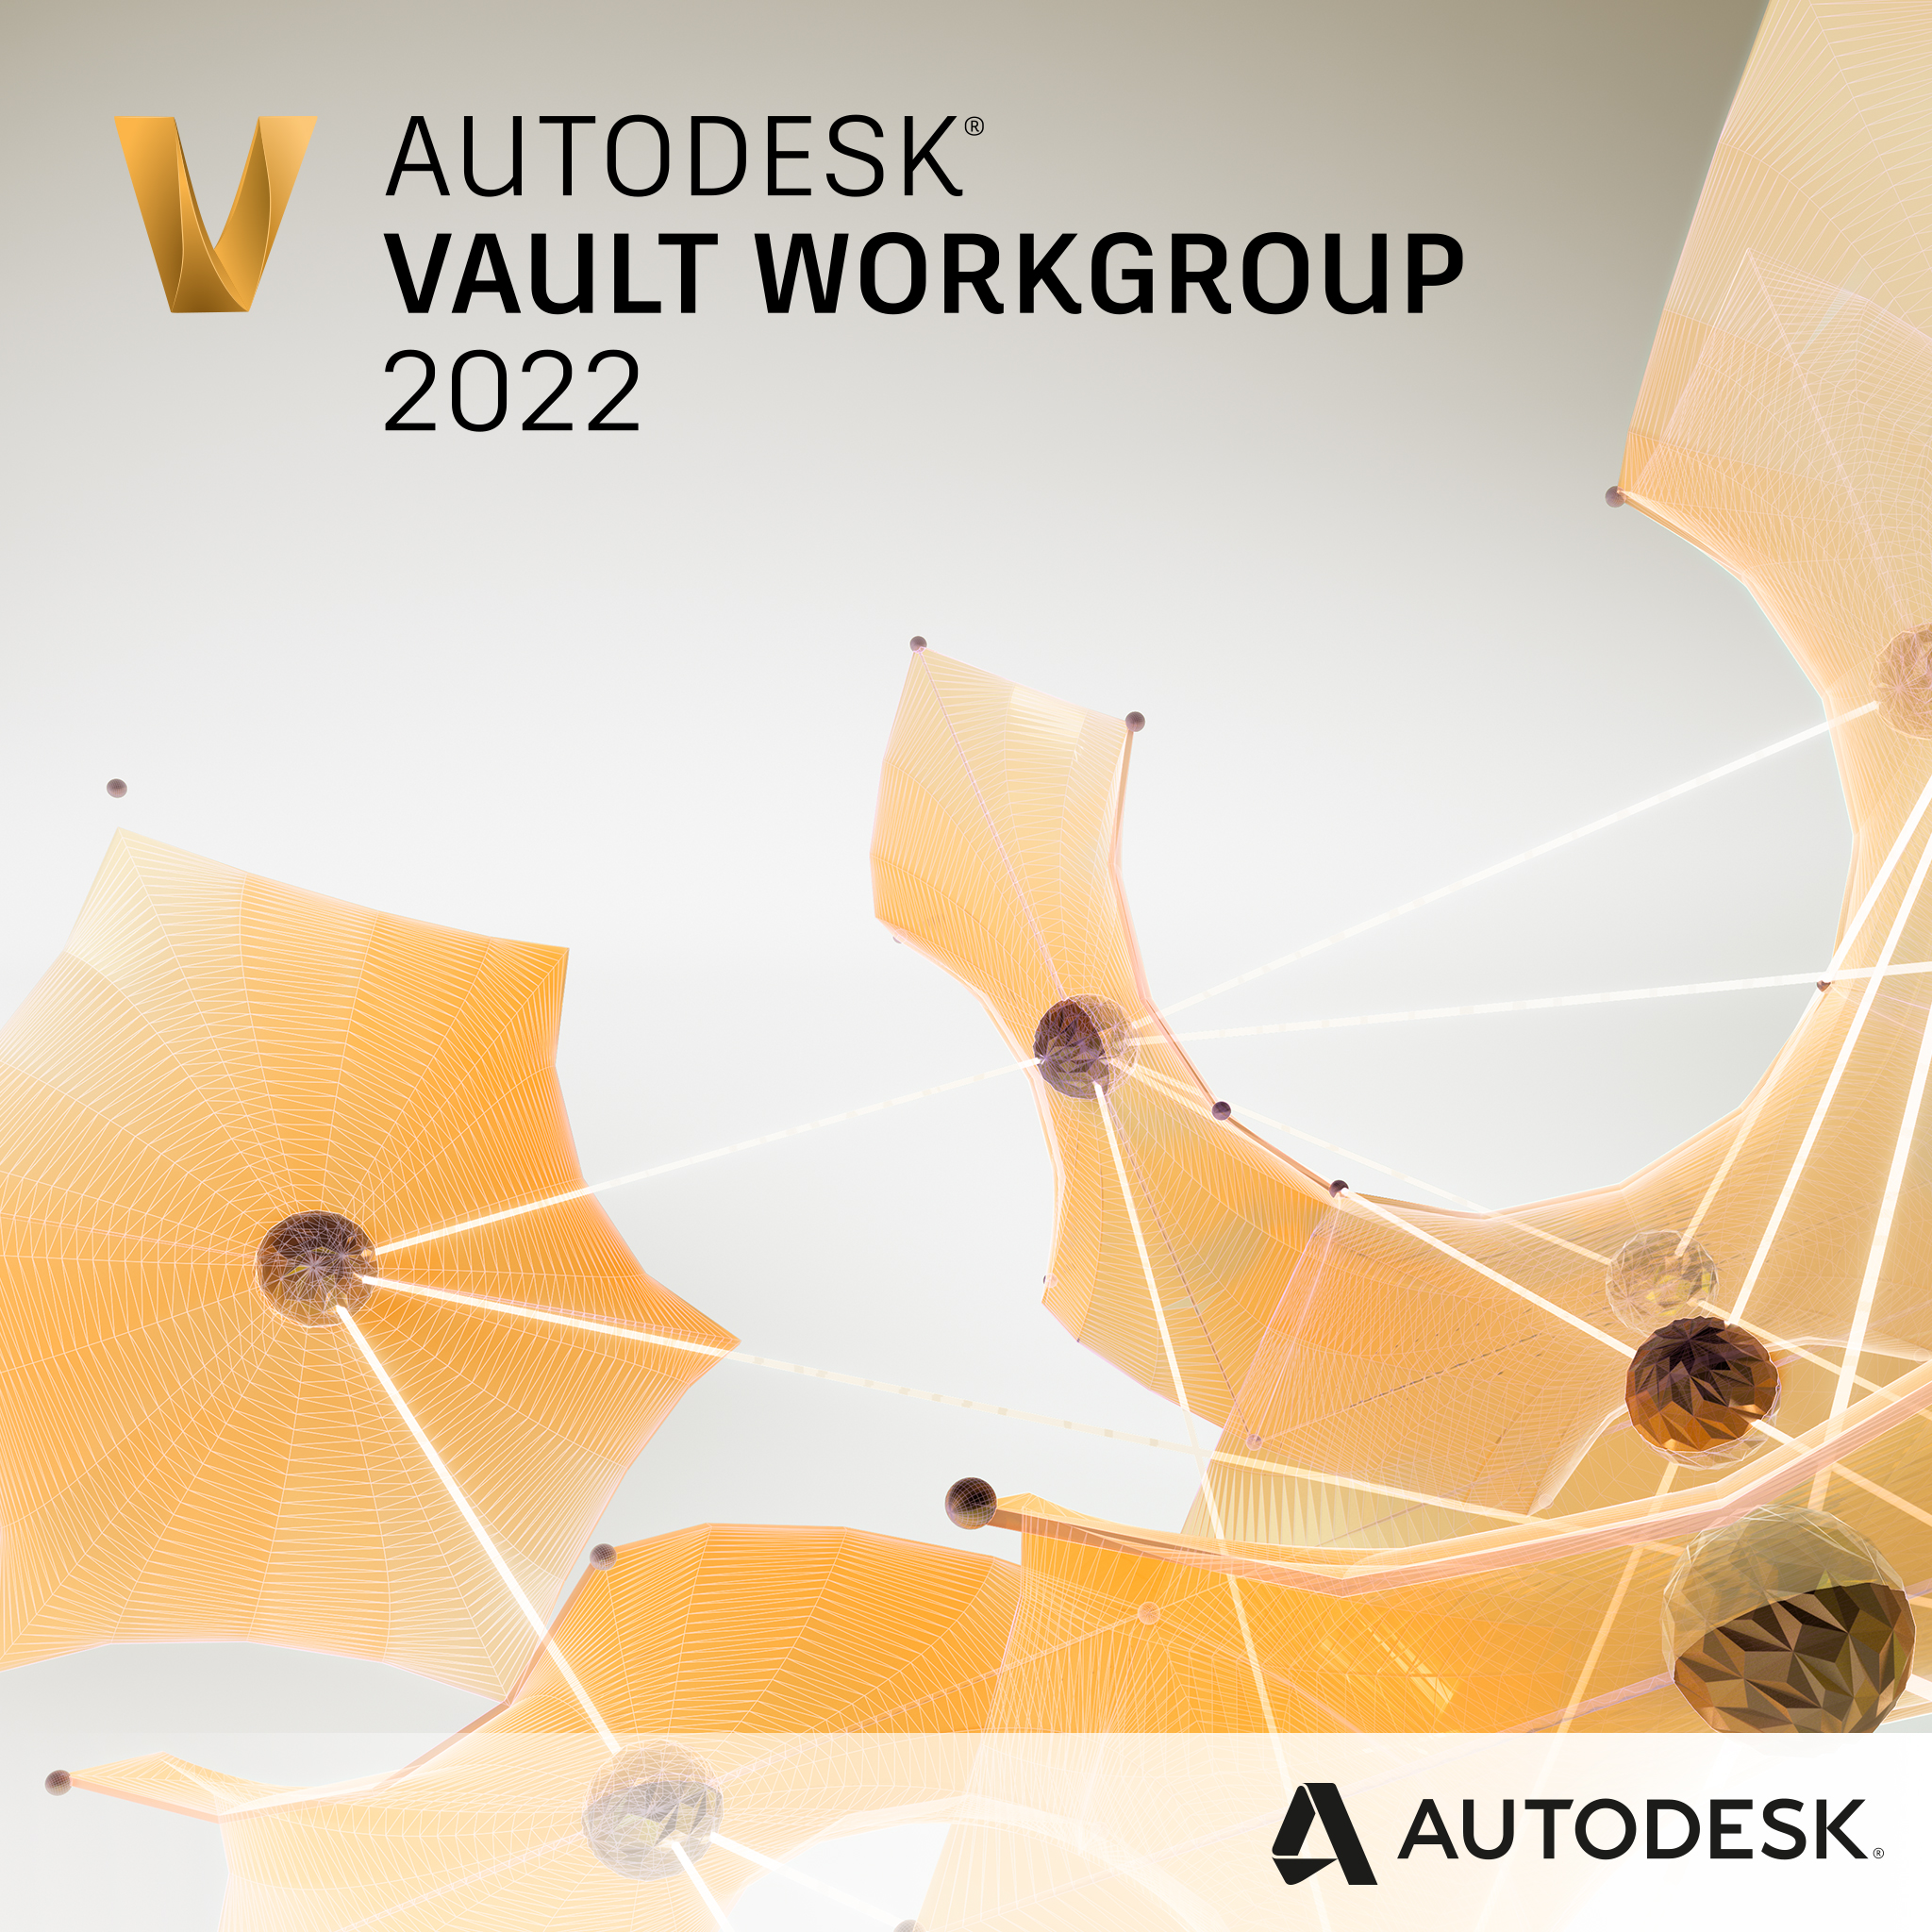 Vault Workgroup